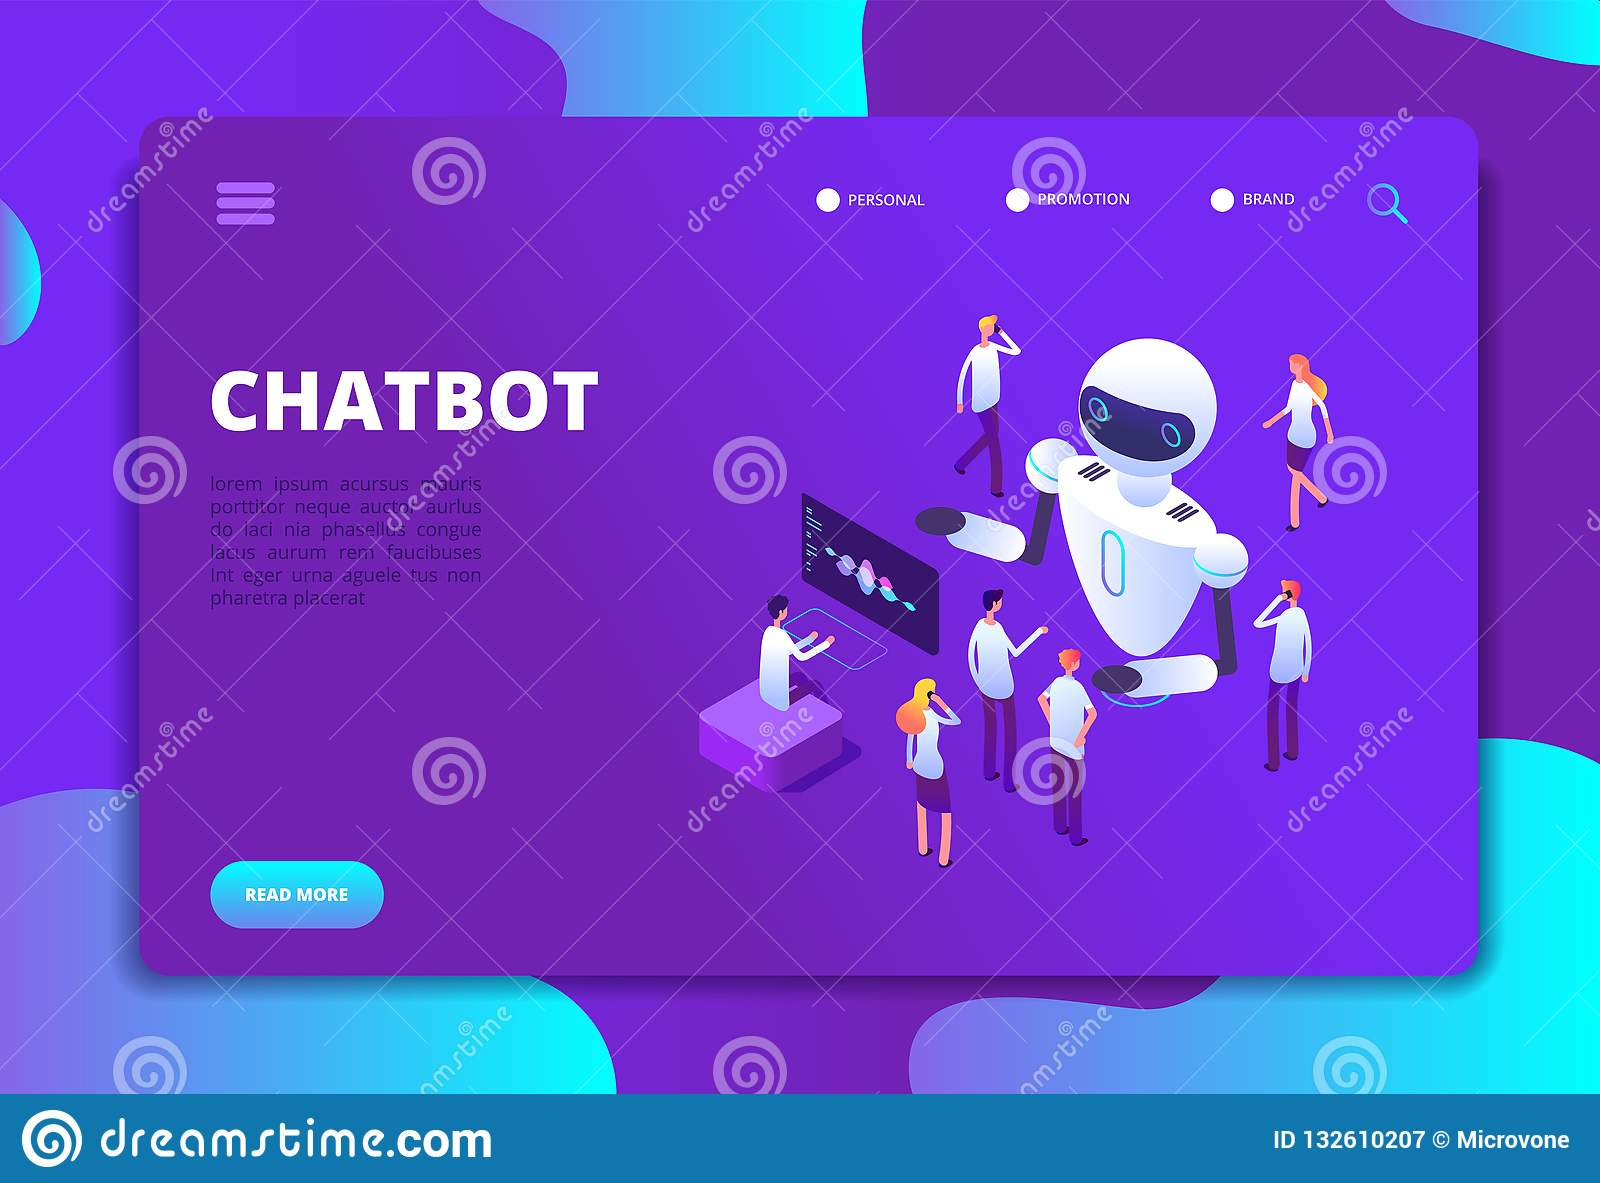 Chatbot isometric concept. Bot chatting with people. Artificial intelligence conversation future technology vector